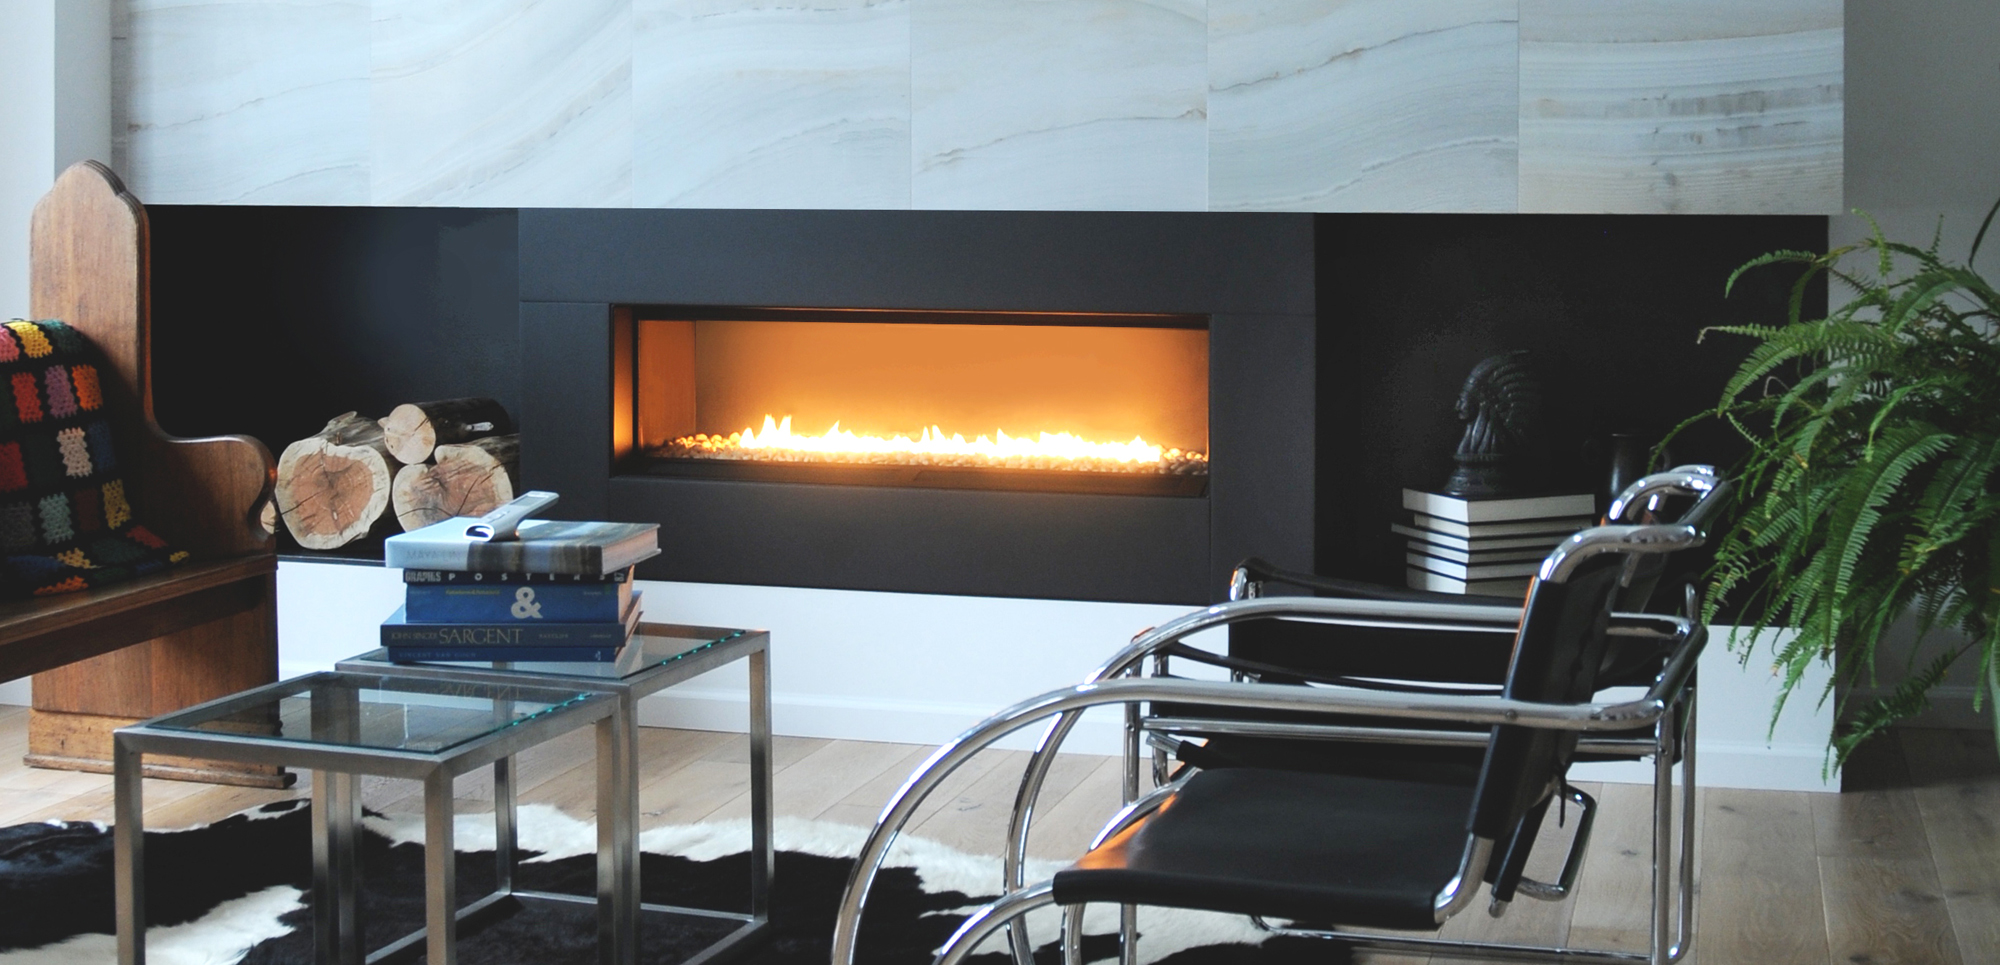 Design Modern Gas Fireplace spark modern fires offers the best selection of gas fireplaces be inspired by our variety firepla